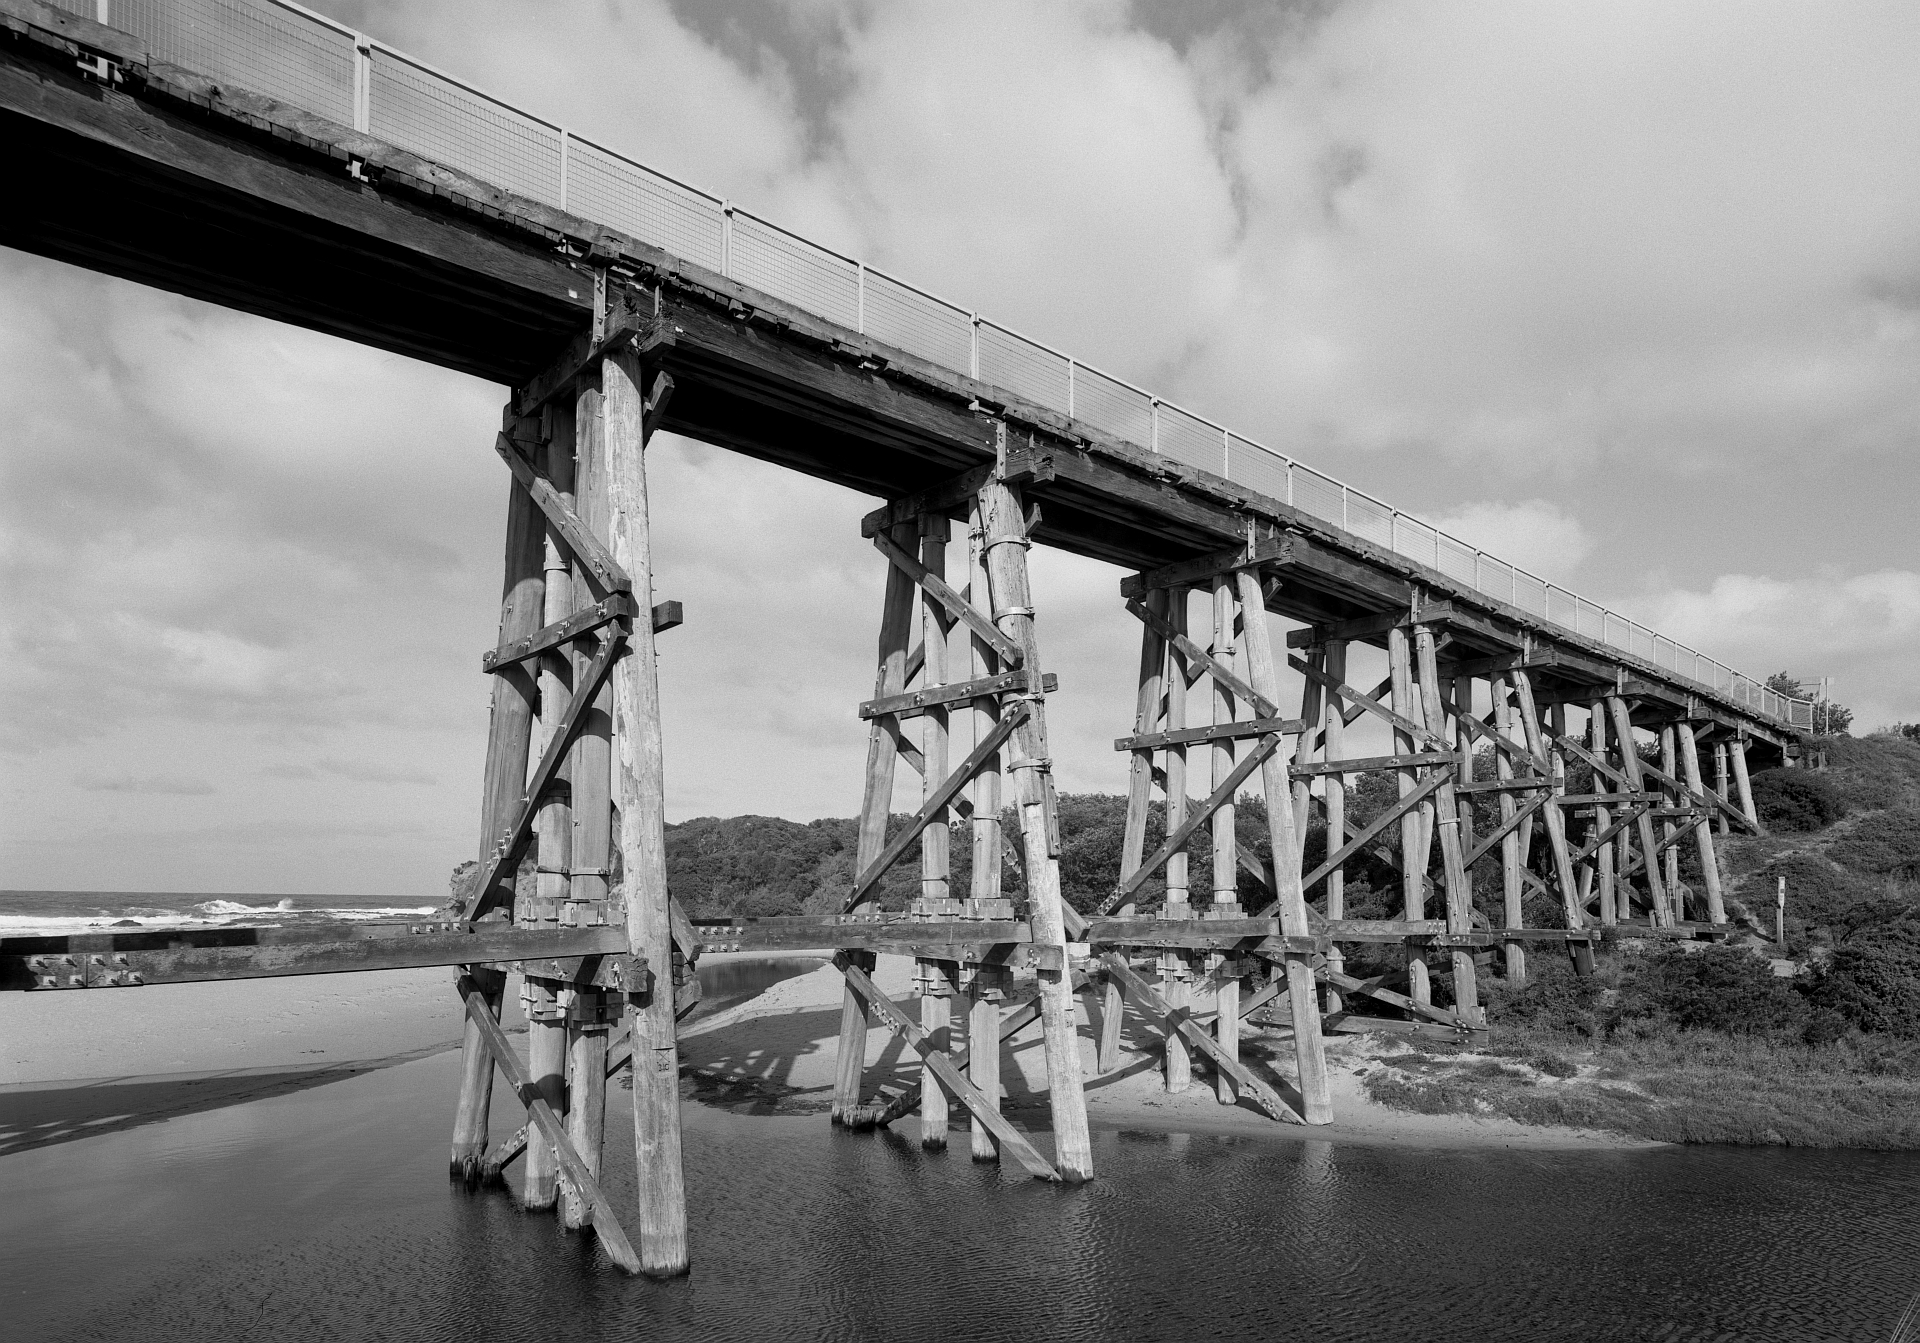 4x5_FP4_Fujinon_65mm_Centre_Filter_Shen_Hao_Kilcunda_Bridge_004_Web.jpg